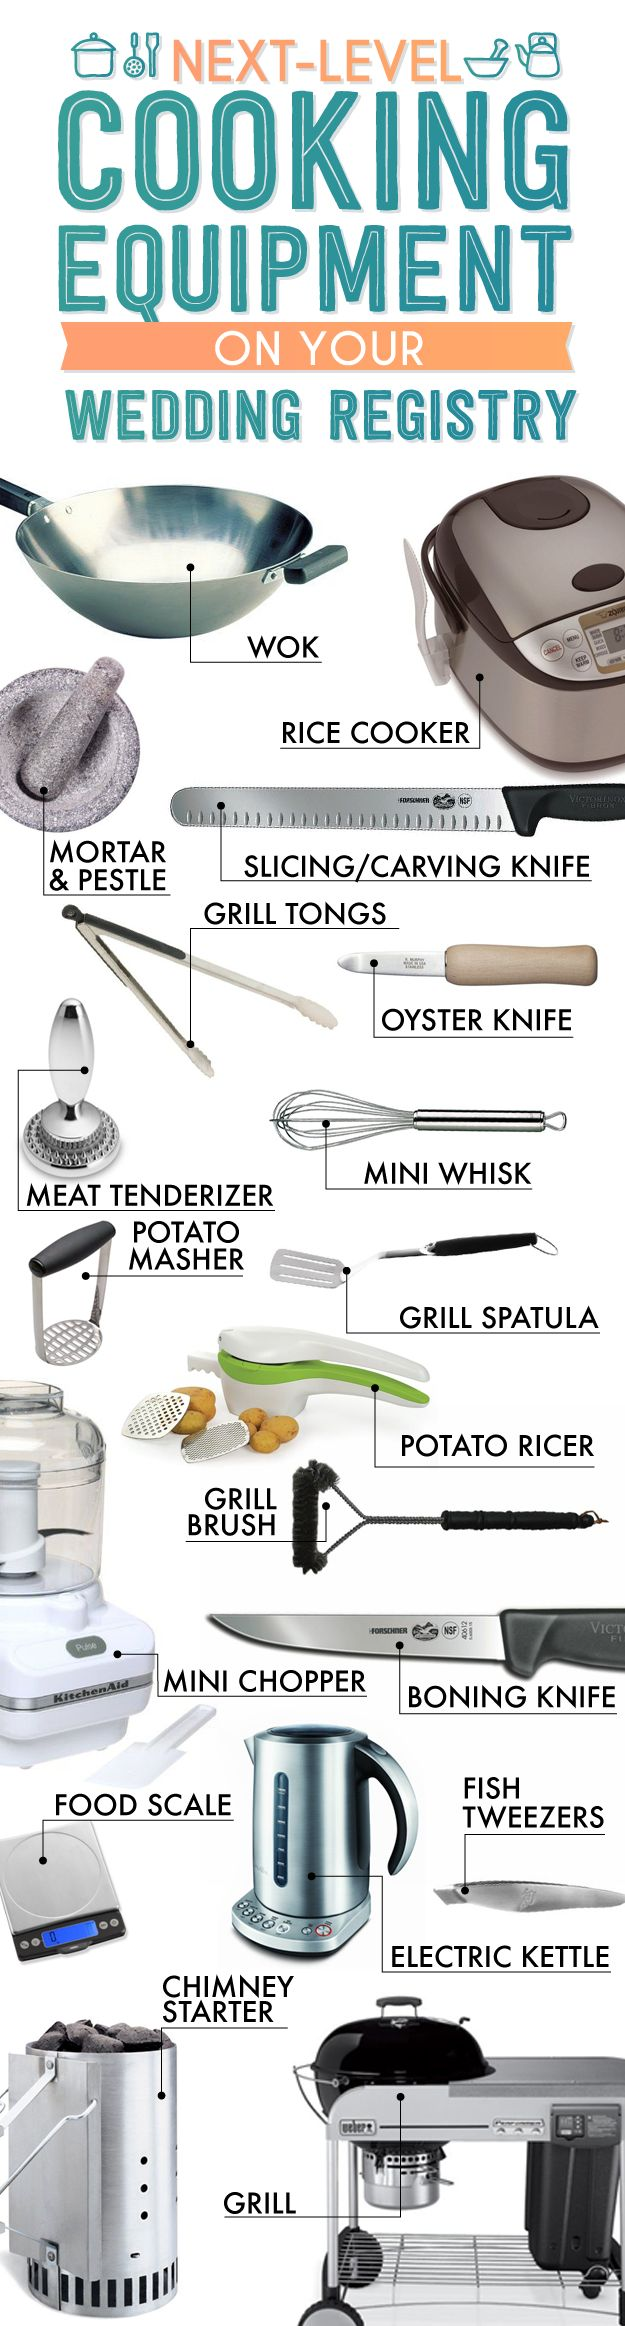 Kitchen equipment and their uses - The Essential Wedding Registry List For Your Kitchen